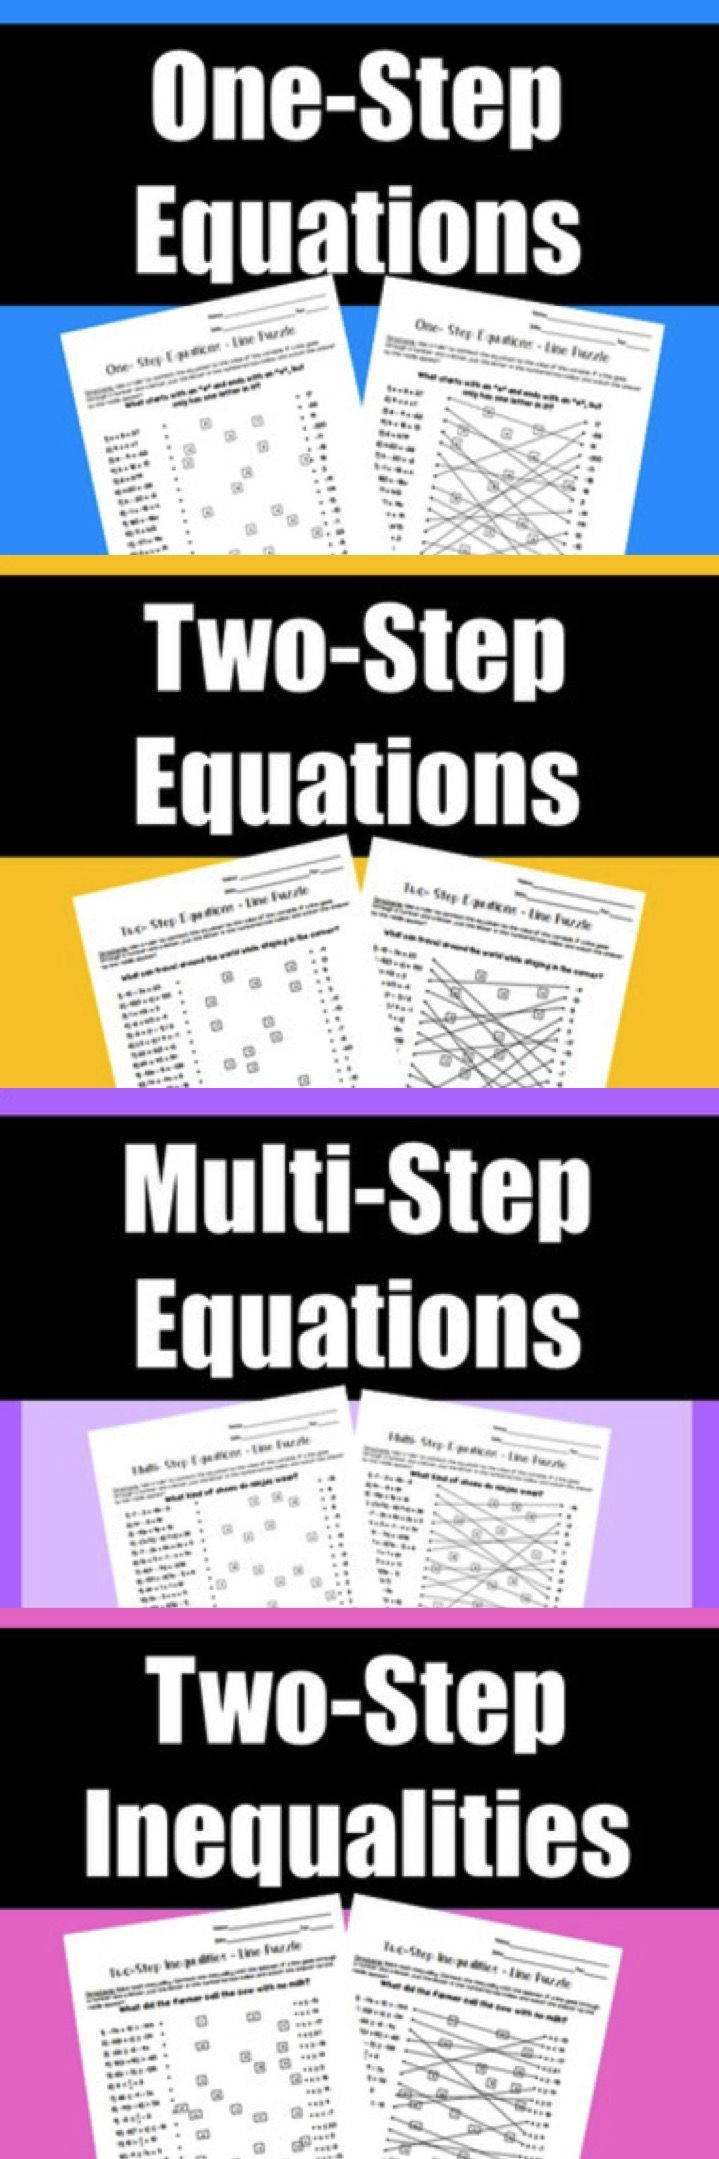 Worksheet Word Best  Algebra Games Ideas Only On Pinterest  Good Math Games  Learning The Time Worksheets Pdf with Pronoun Worksheet For Grade 3 Excel Algebra Activity Worksheets Onestep Equations Twostep Equations Mult Brain Teasers Worksheets Pdf